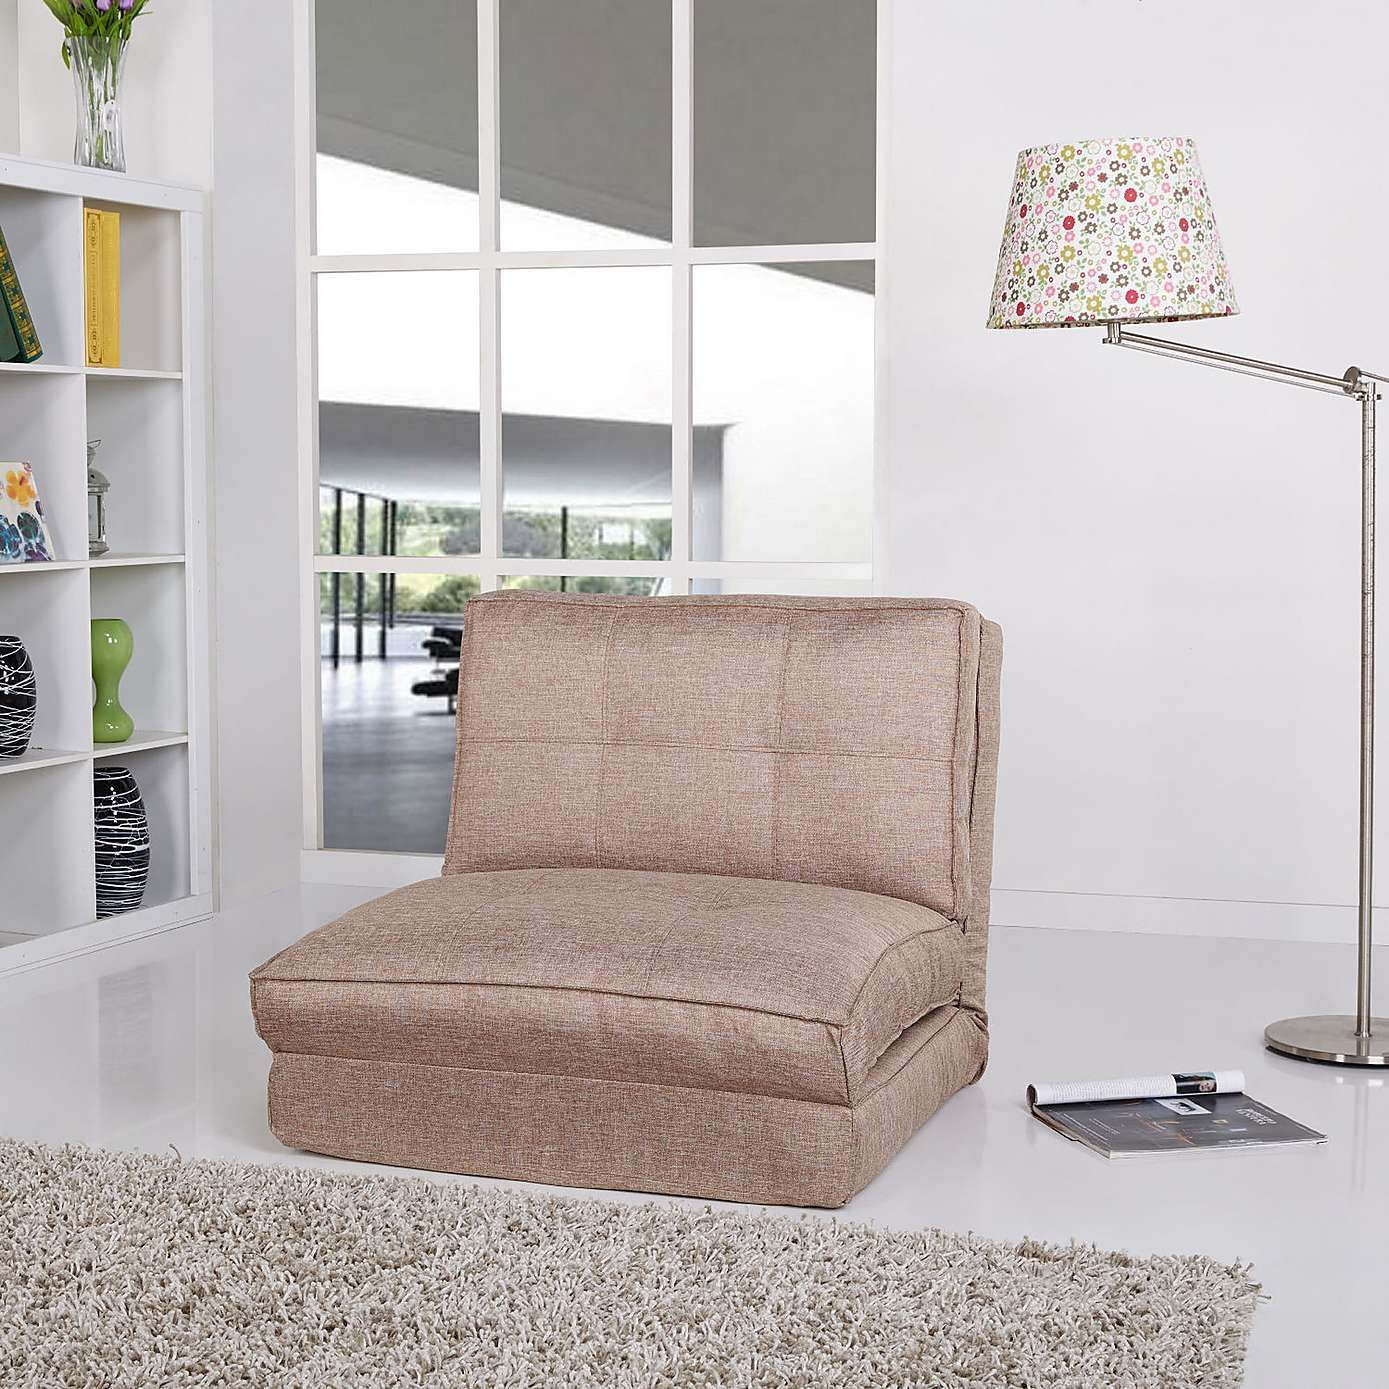 Leveson Fabric Chair Bed Dunelm Chair bed, Chair